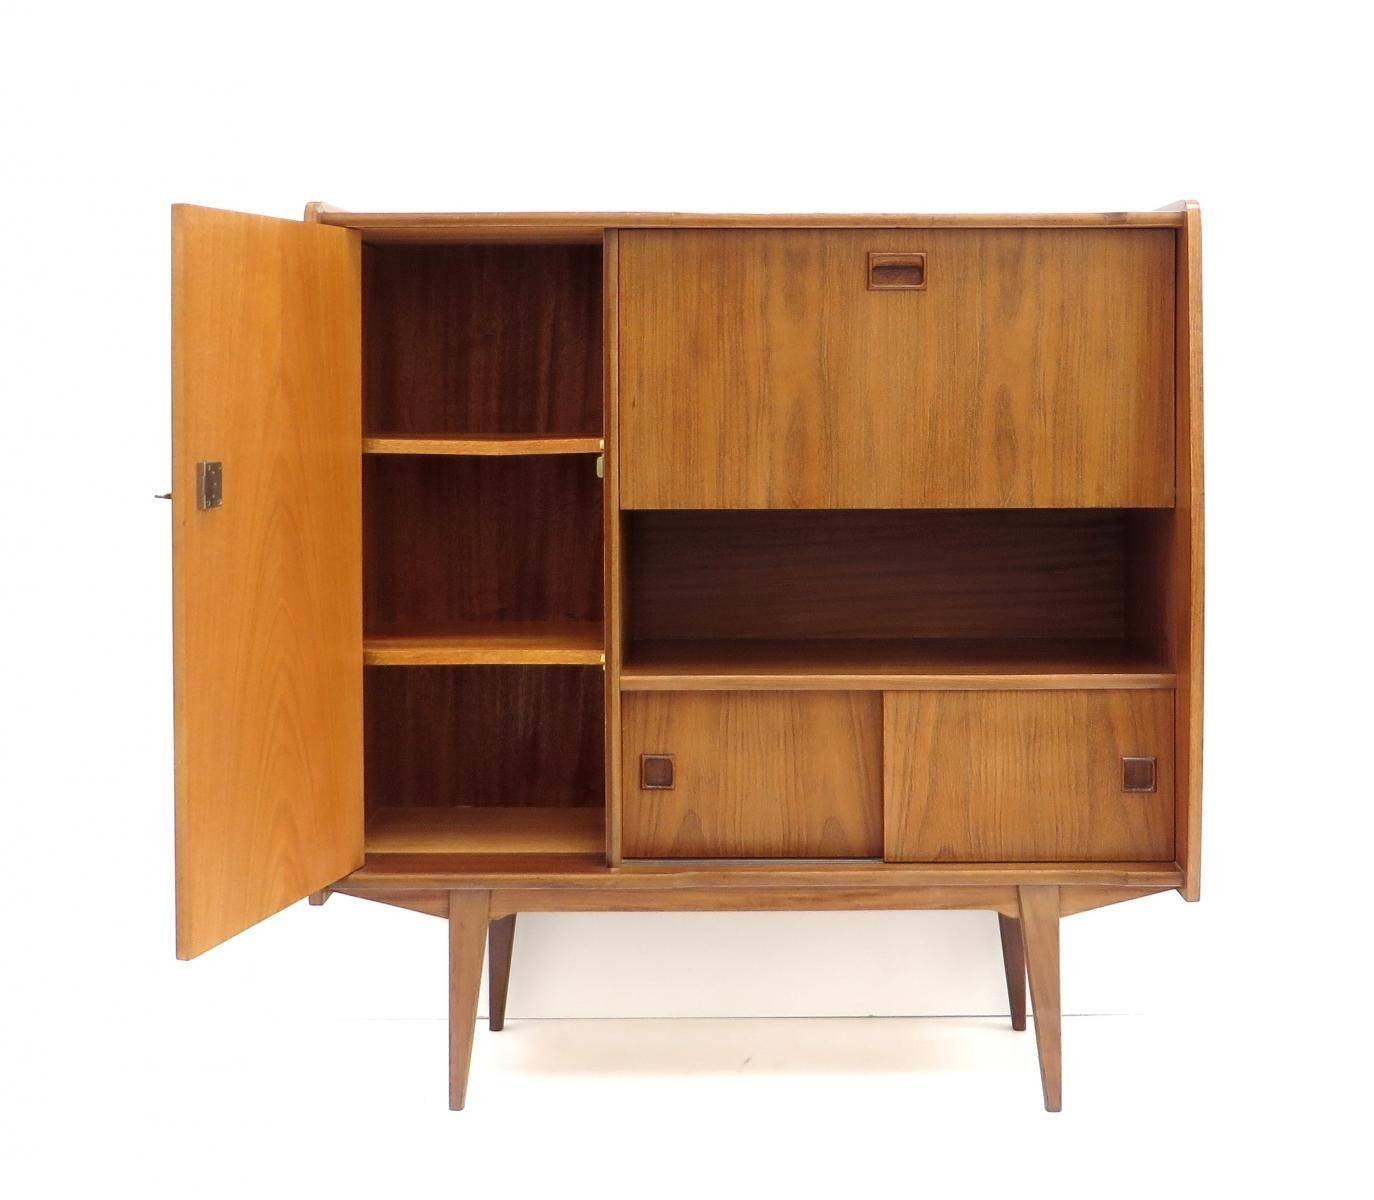 Vintage High Sideboard In Teak, 1960S For Sale At Pamono Pertaining To High Sideboard (View 19 of 20)